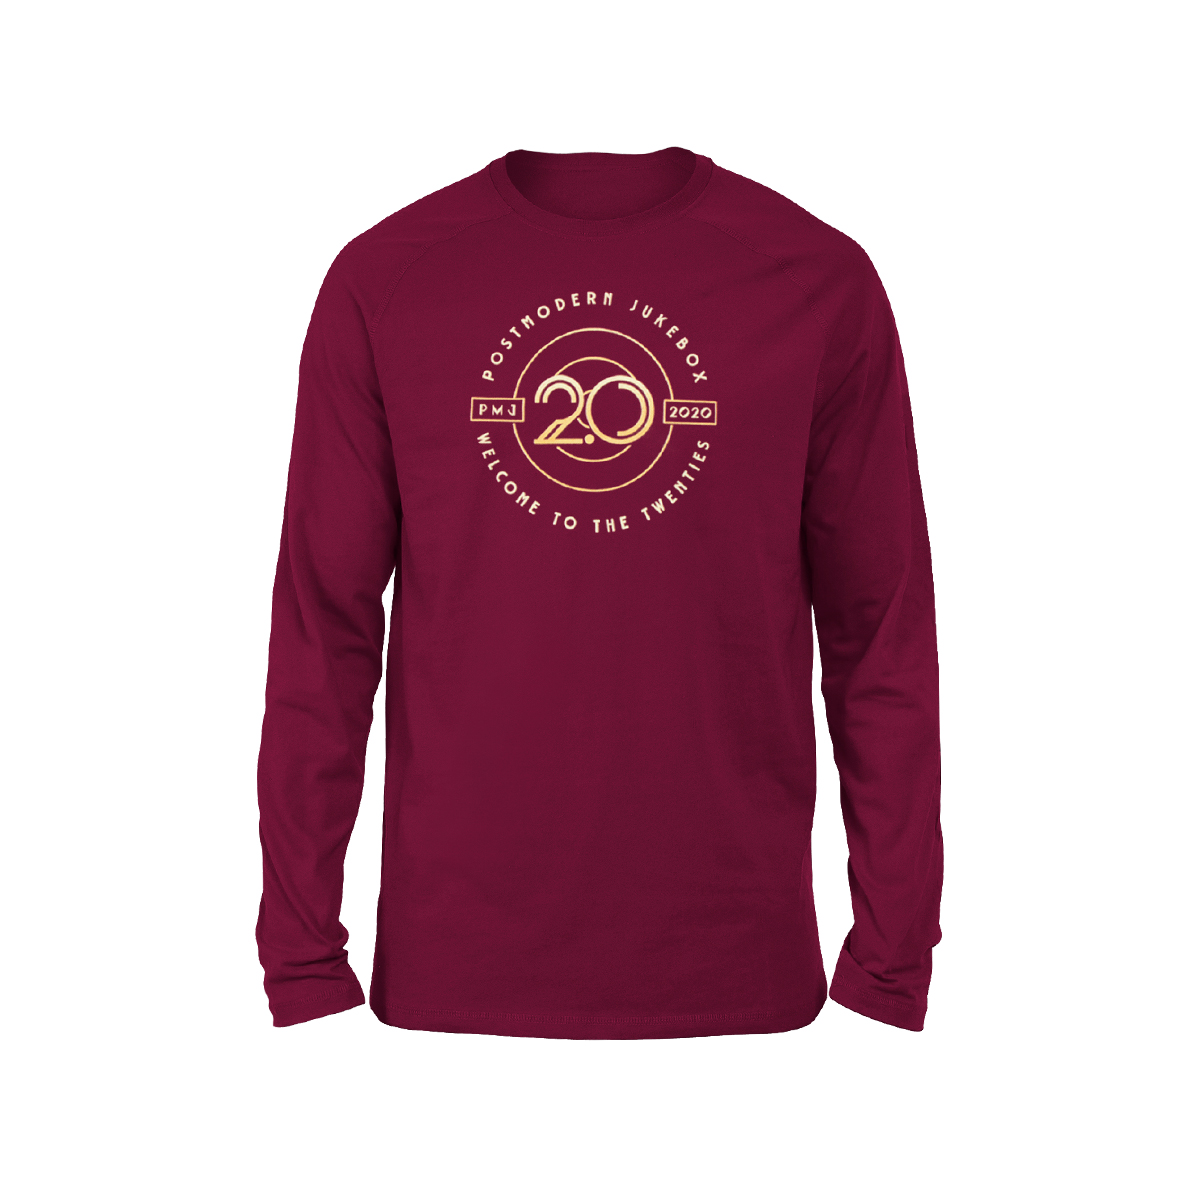 Welcome To The Twenties T-Shirt